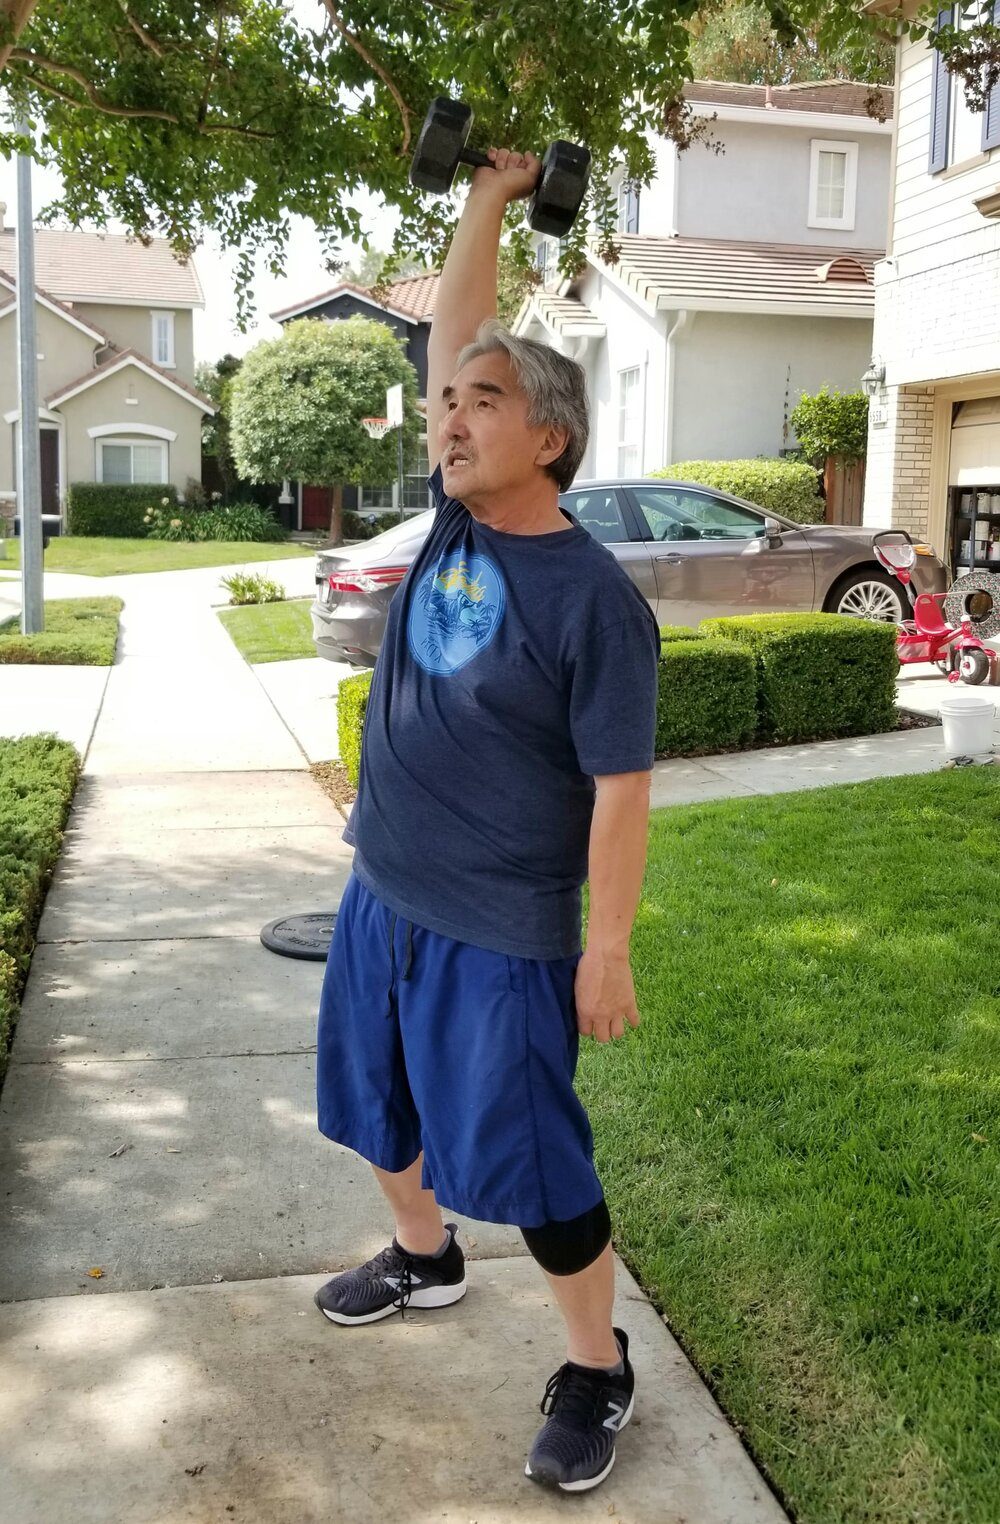 """""""Due to COVID I now work out in my driveway. I limit exposure to public places, so getting outside to work out is a release. I started doing Blue J's daily workouts at home and am able to personalize exercises to my own comfort so I get in a great workout."""""""